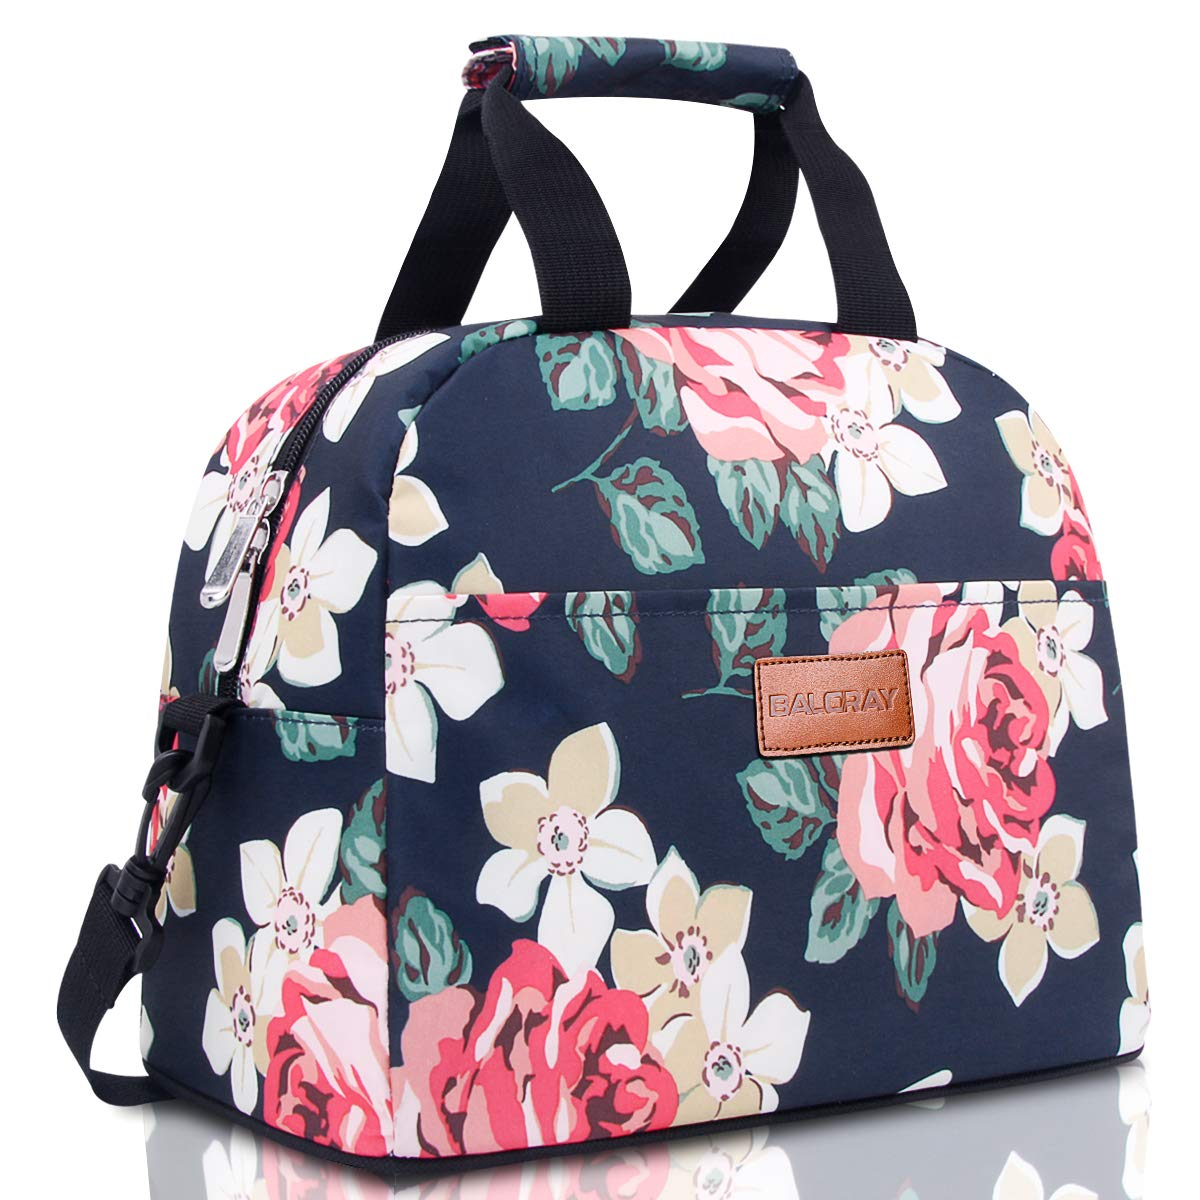 BALORAY Lunch Bag for Women Lunch Cooler Bag with Shoulder Strap Insulated Lunch Tote Bag Lunch Box Perfect for Work Picnic Fishing Boating(Dark Blue) by BALORAY